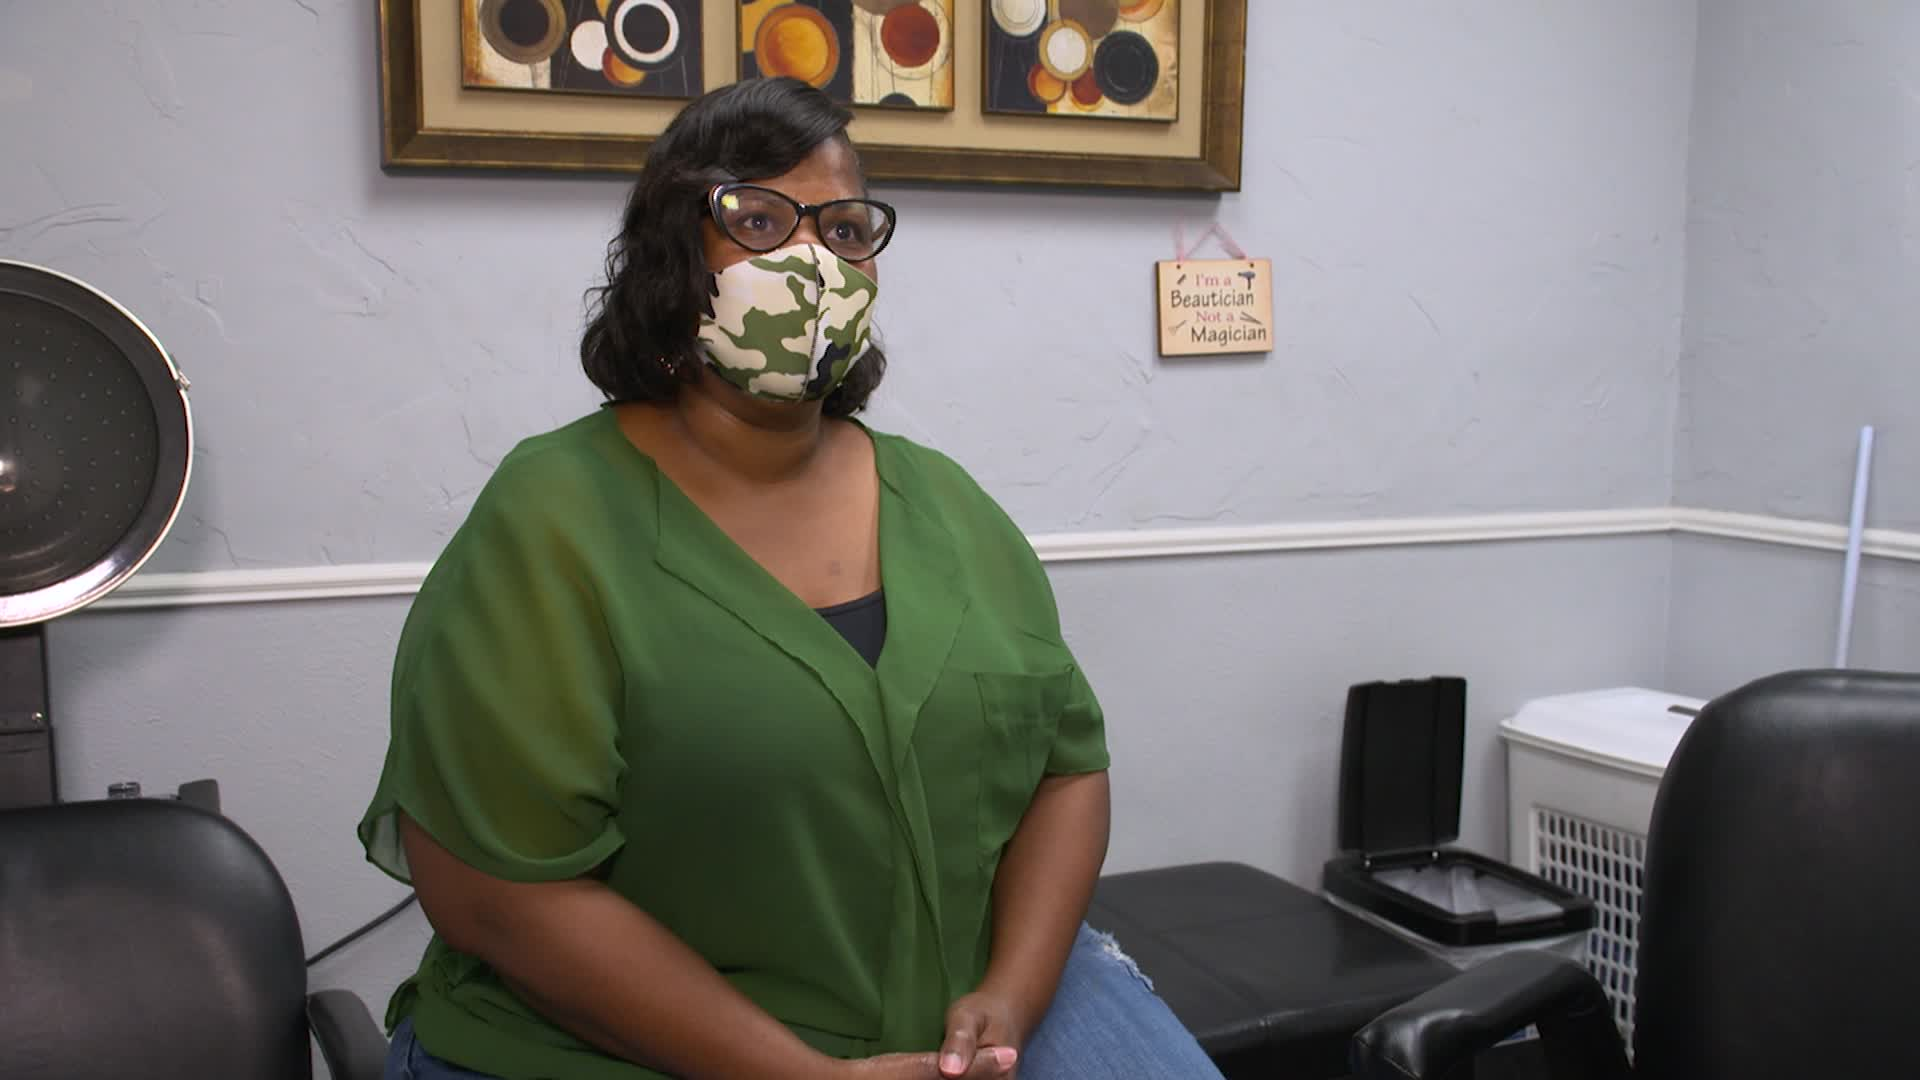 From a bar owner to a hair stylist, Americans struggle in a pandemic economy